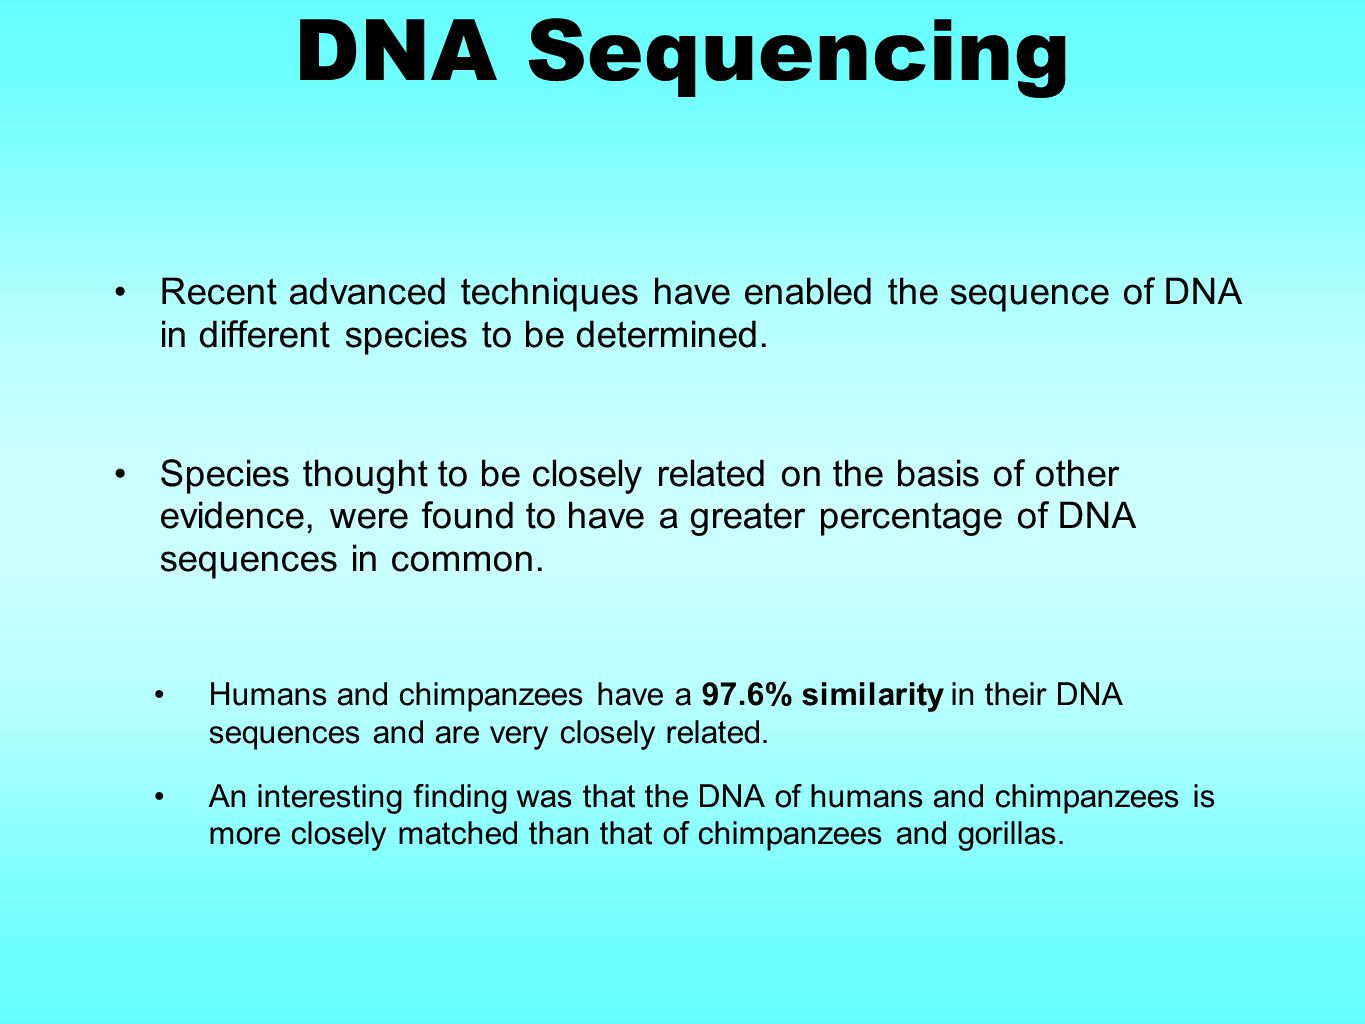 DNA Sequencing Recent advanced techniques have enabled the sequence of DNA in different species to be determined.